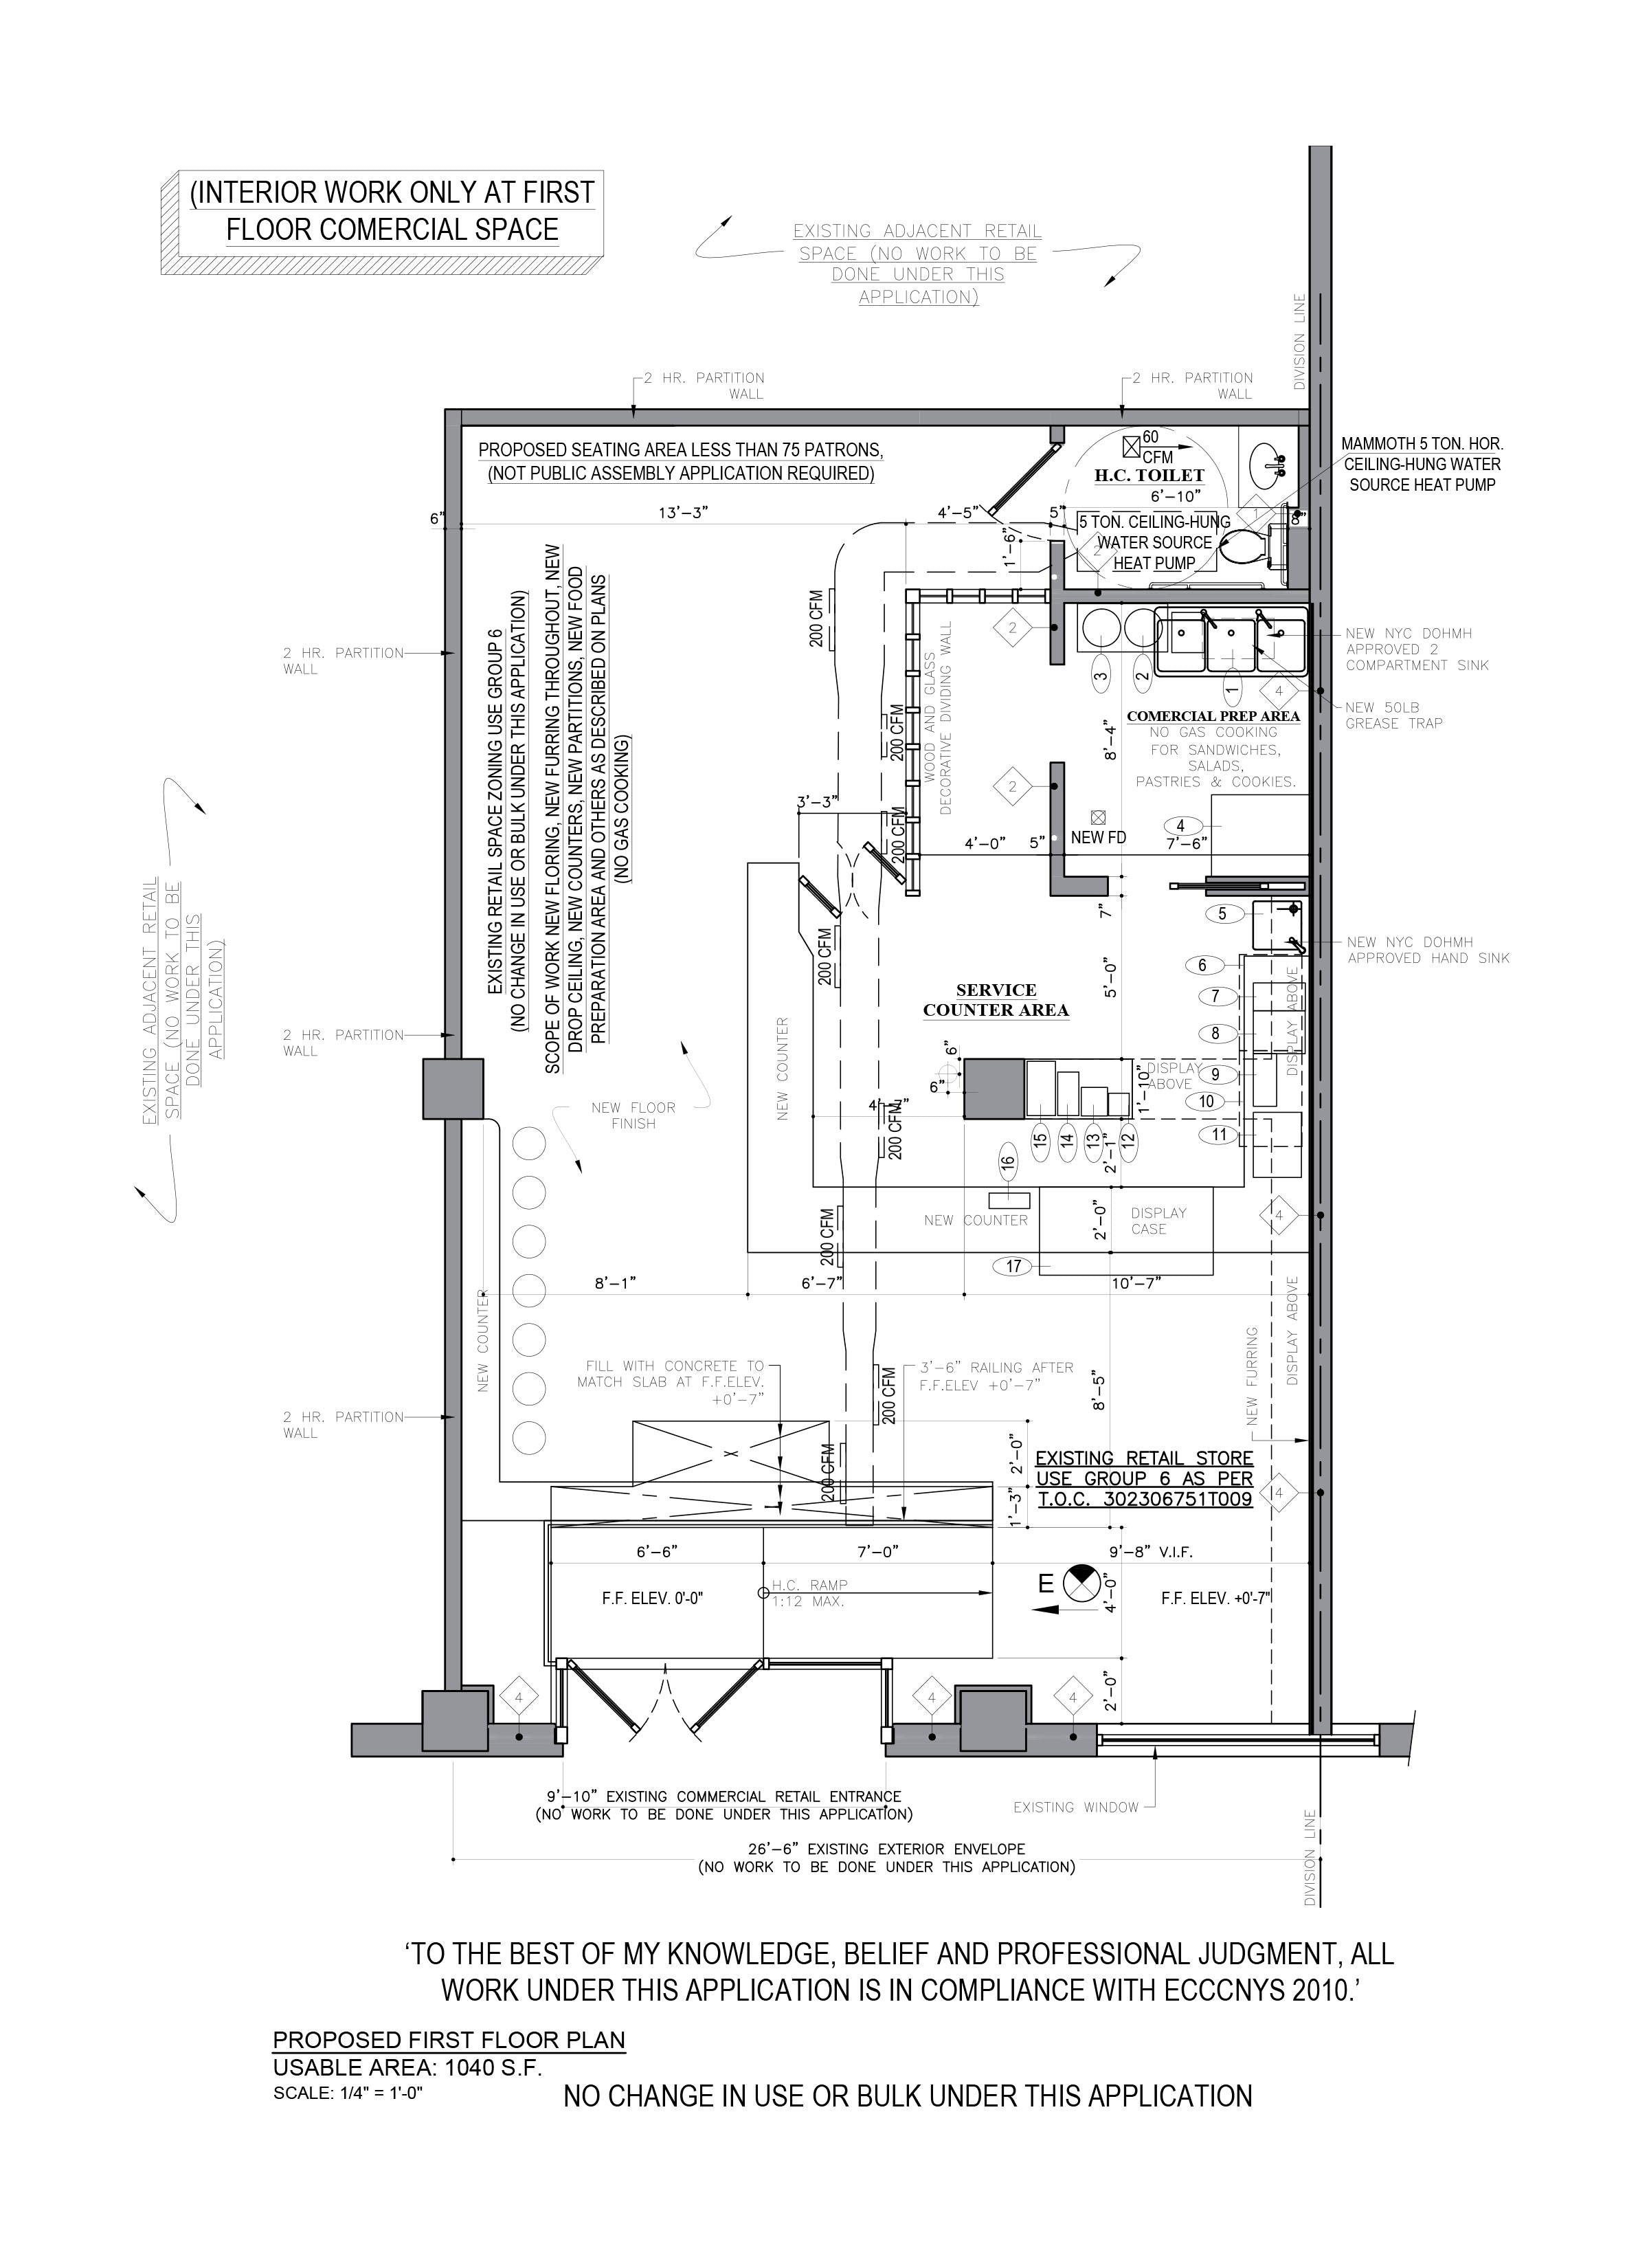 AutoCAD drafting_Coffee Shop floor plan design_Brooklyn, NY